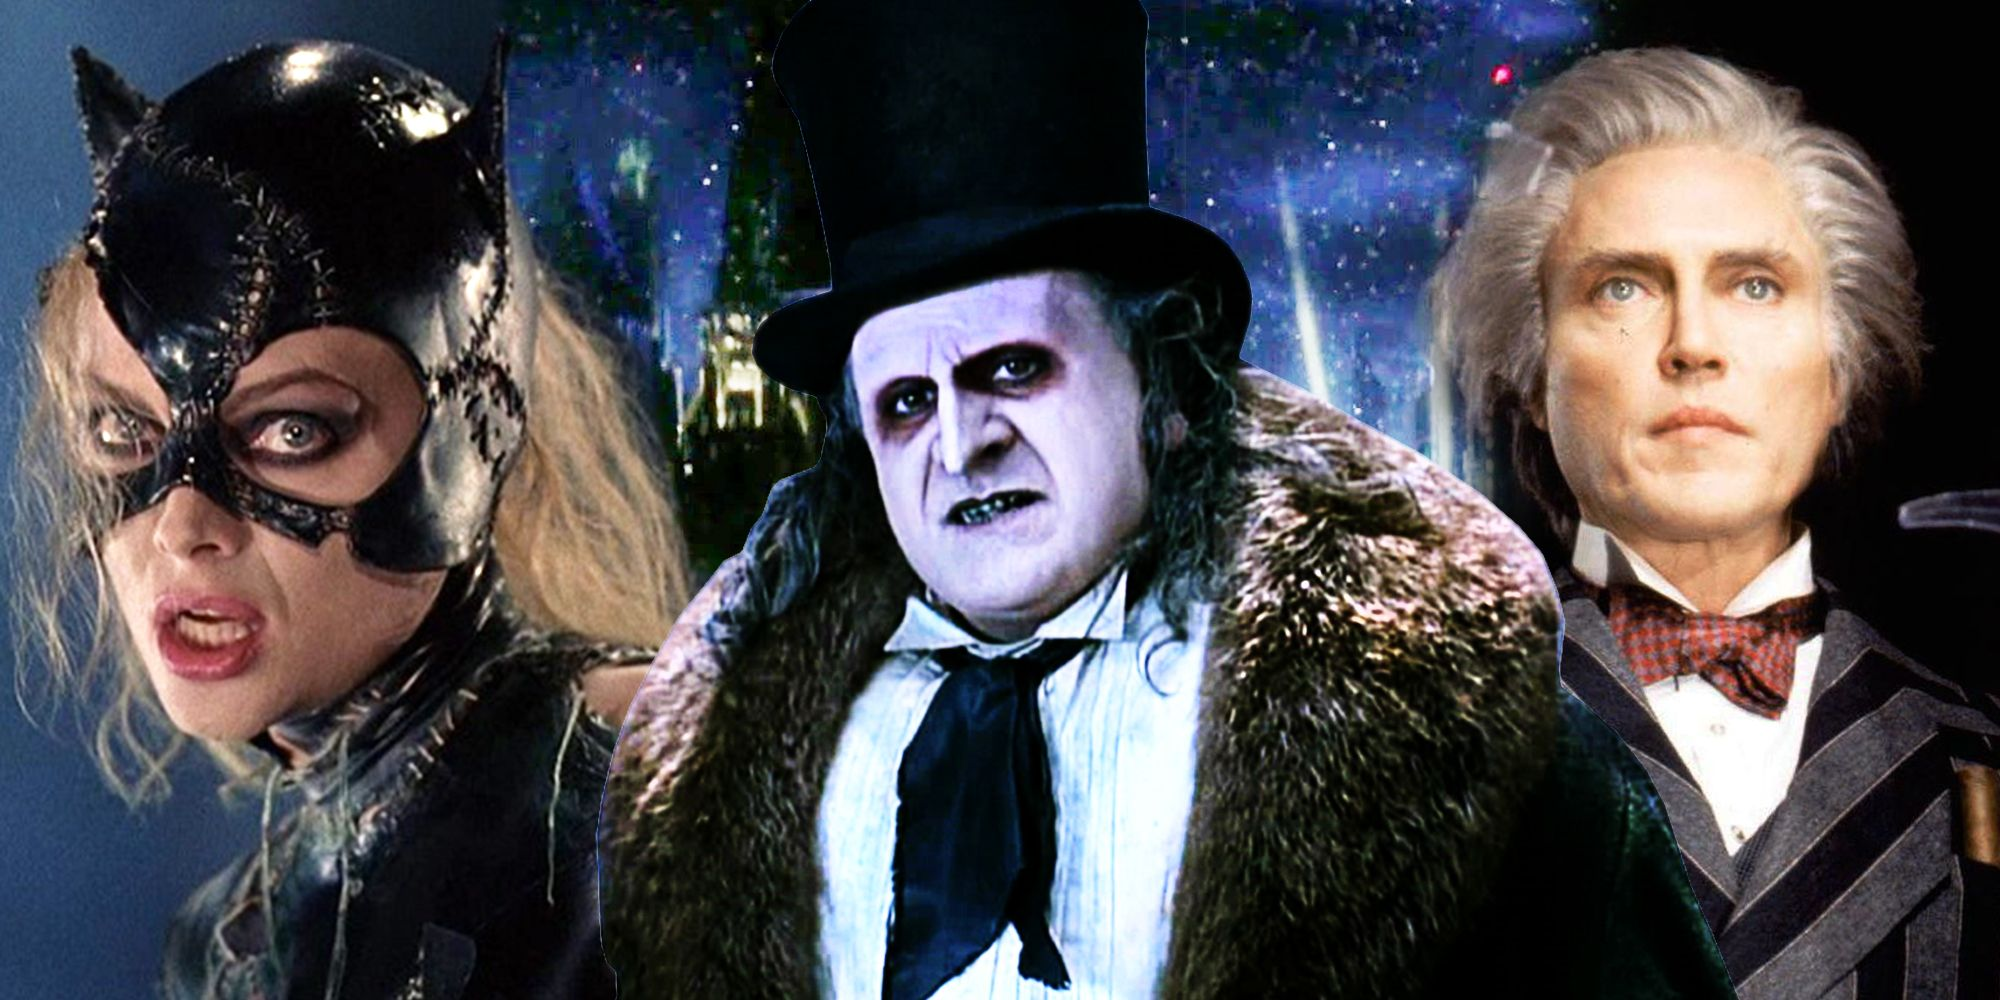 Batman Returns' Villains Weren't A Problem (They Defined Gotham)